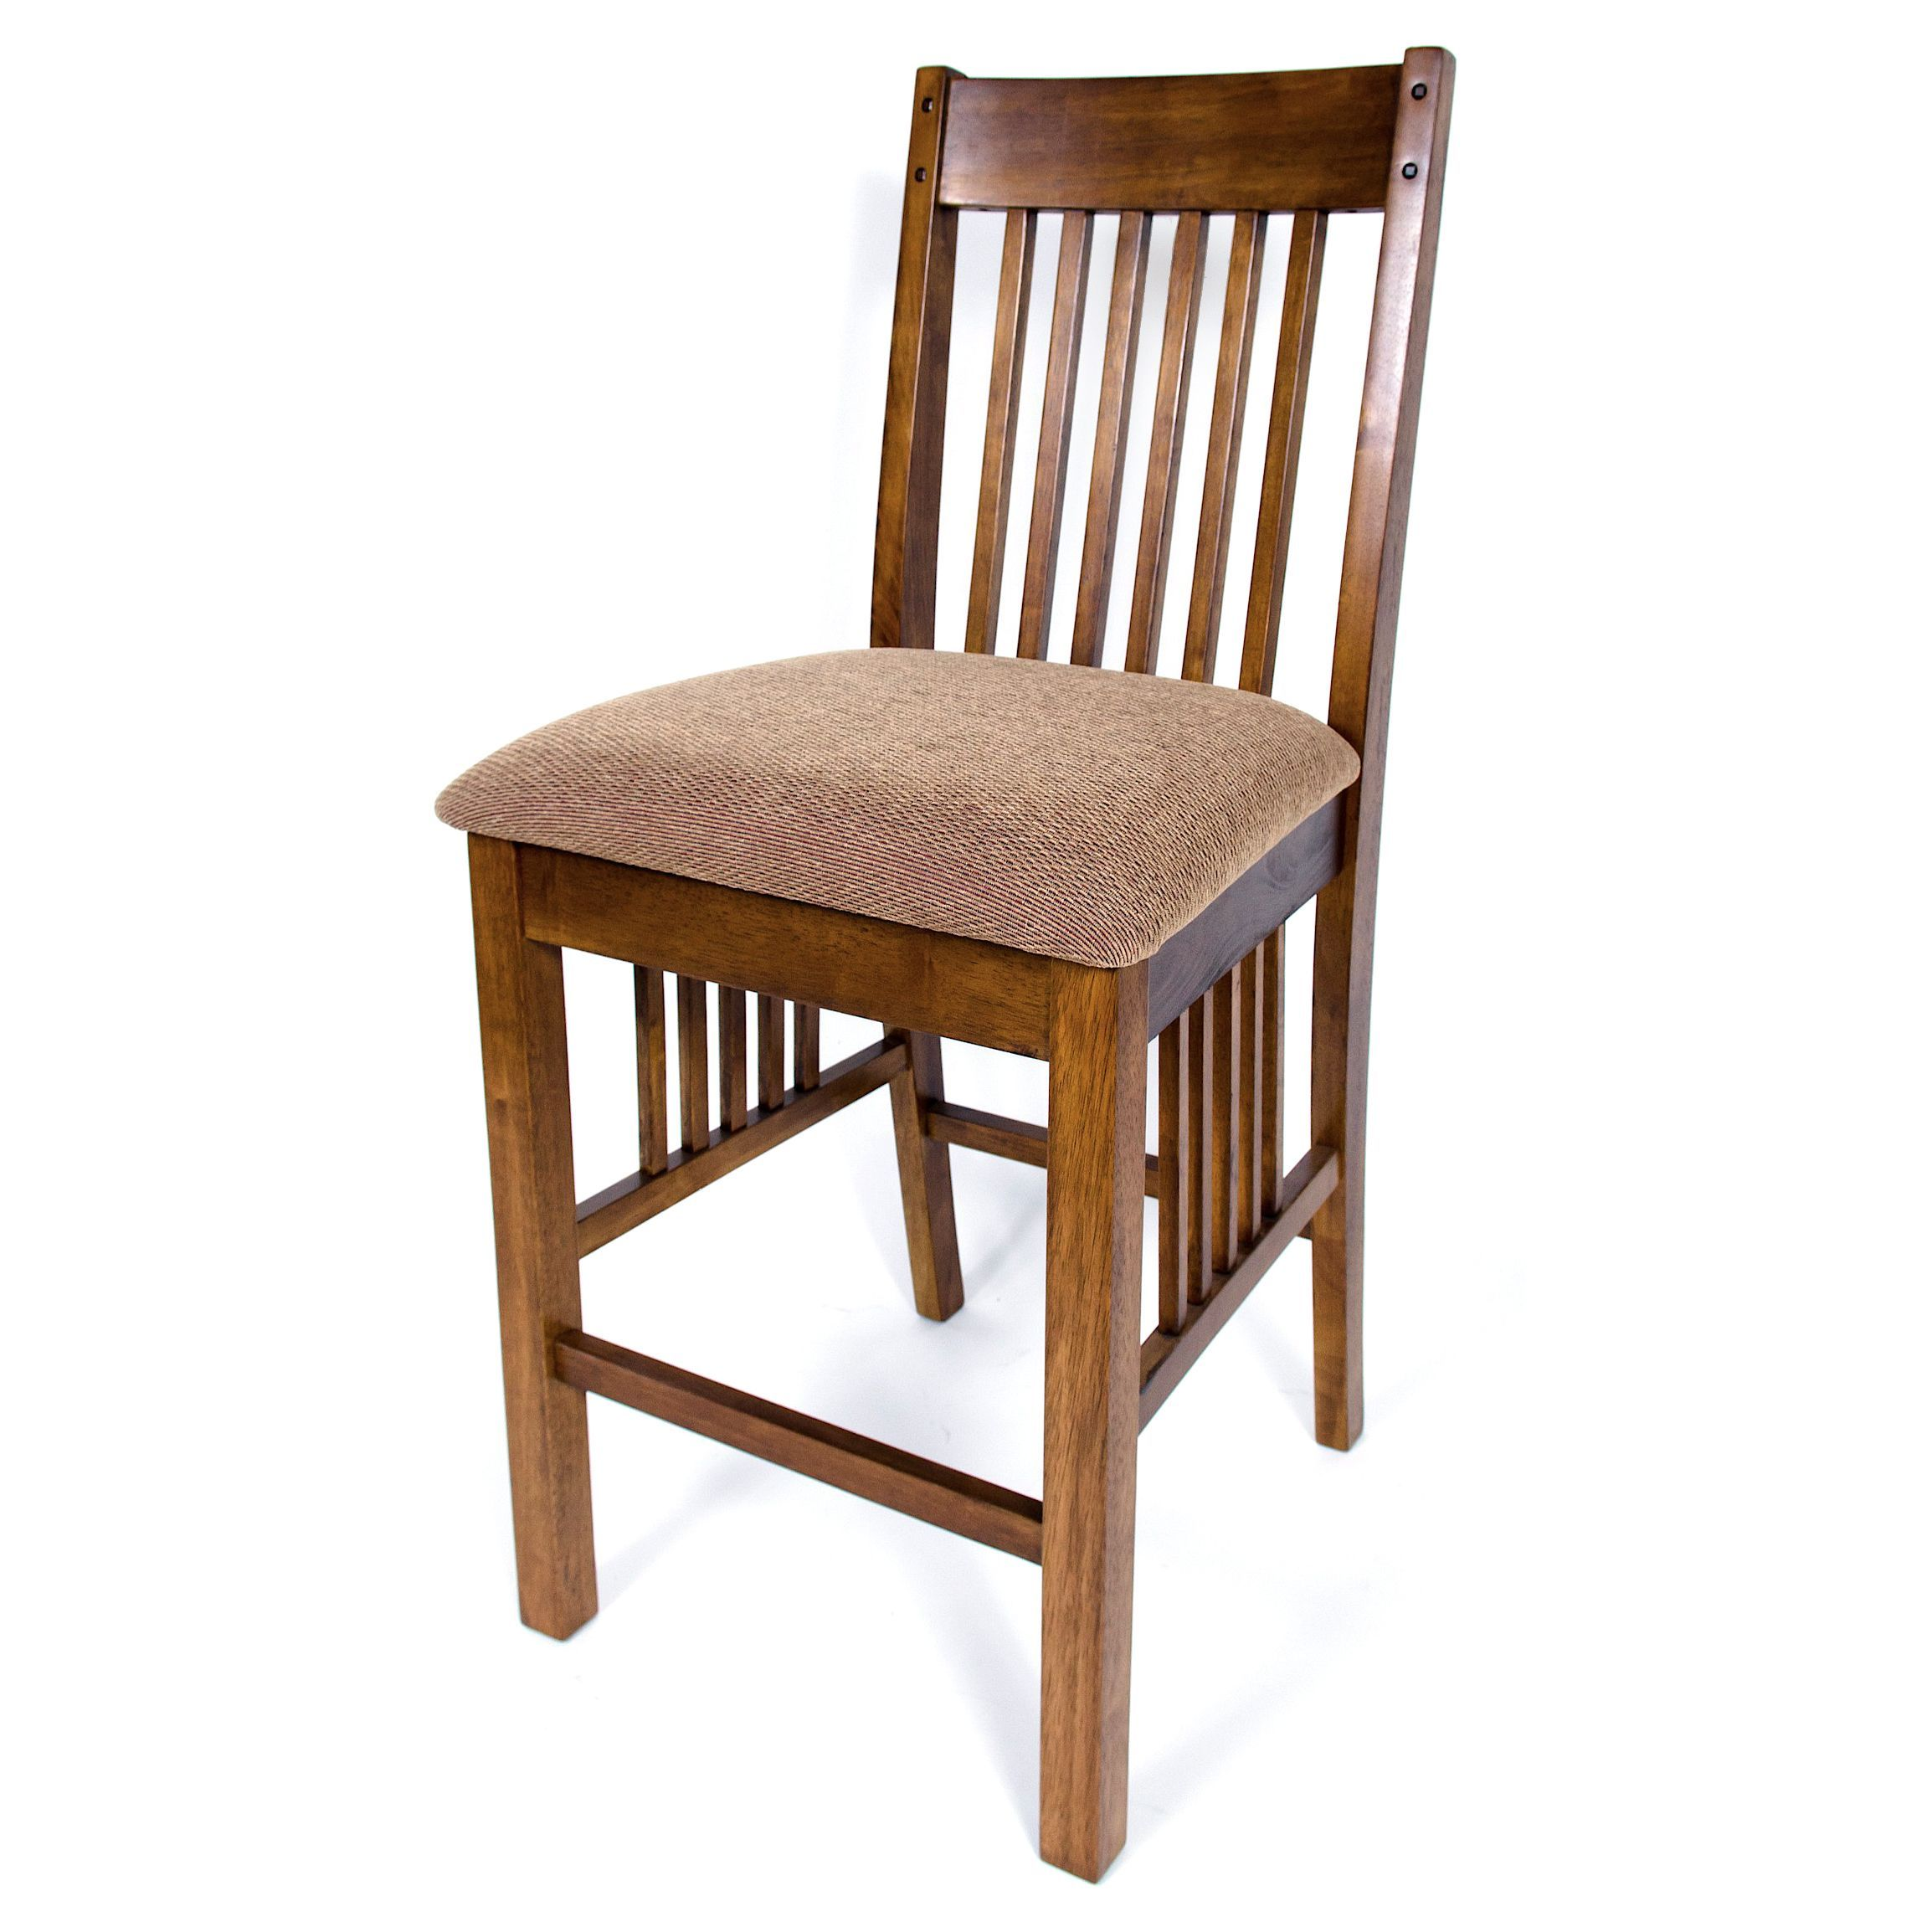 Solid Hardwood Mission Cushion 24 Inch Counter Height Barstool Set